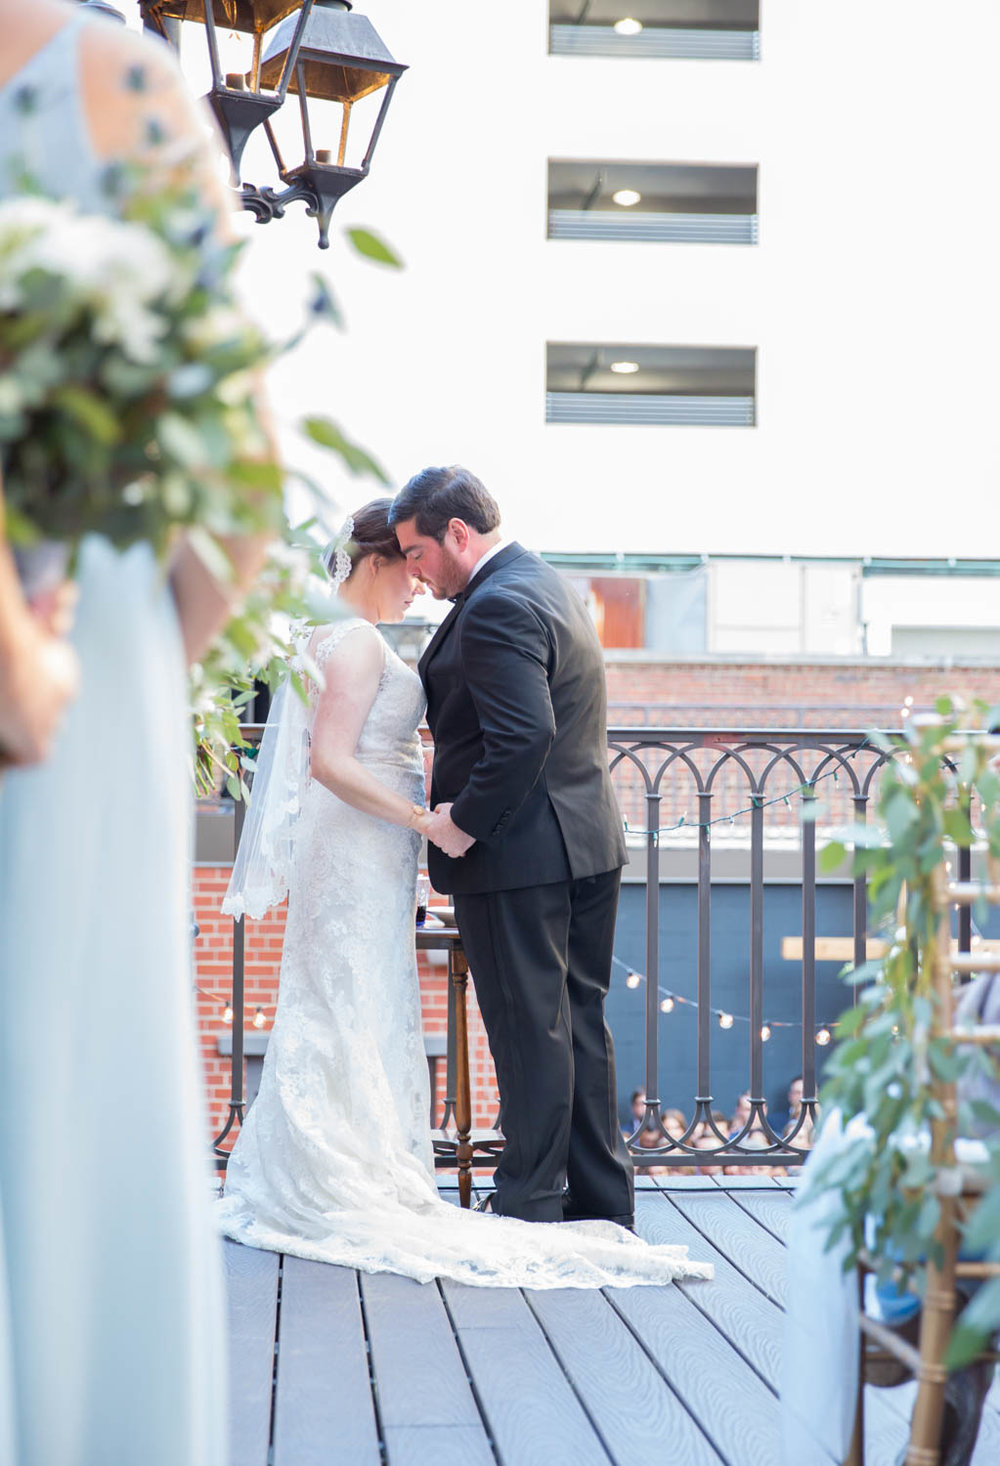 downtowncolumbiawedding-135.jpg